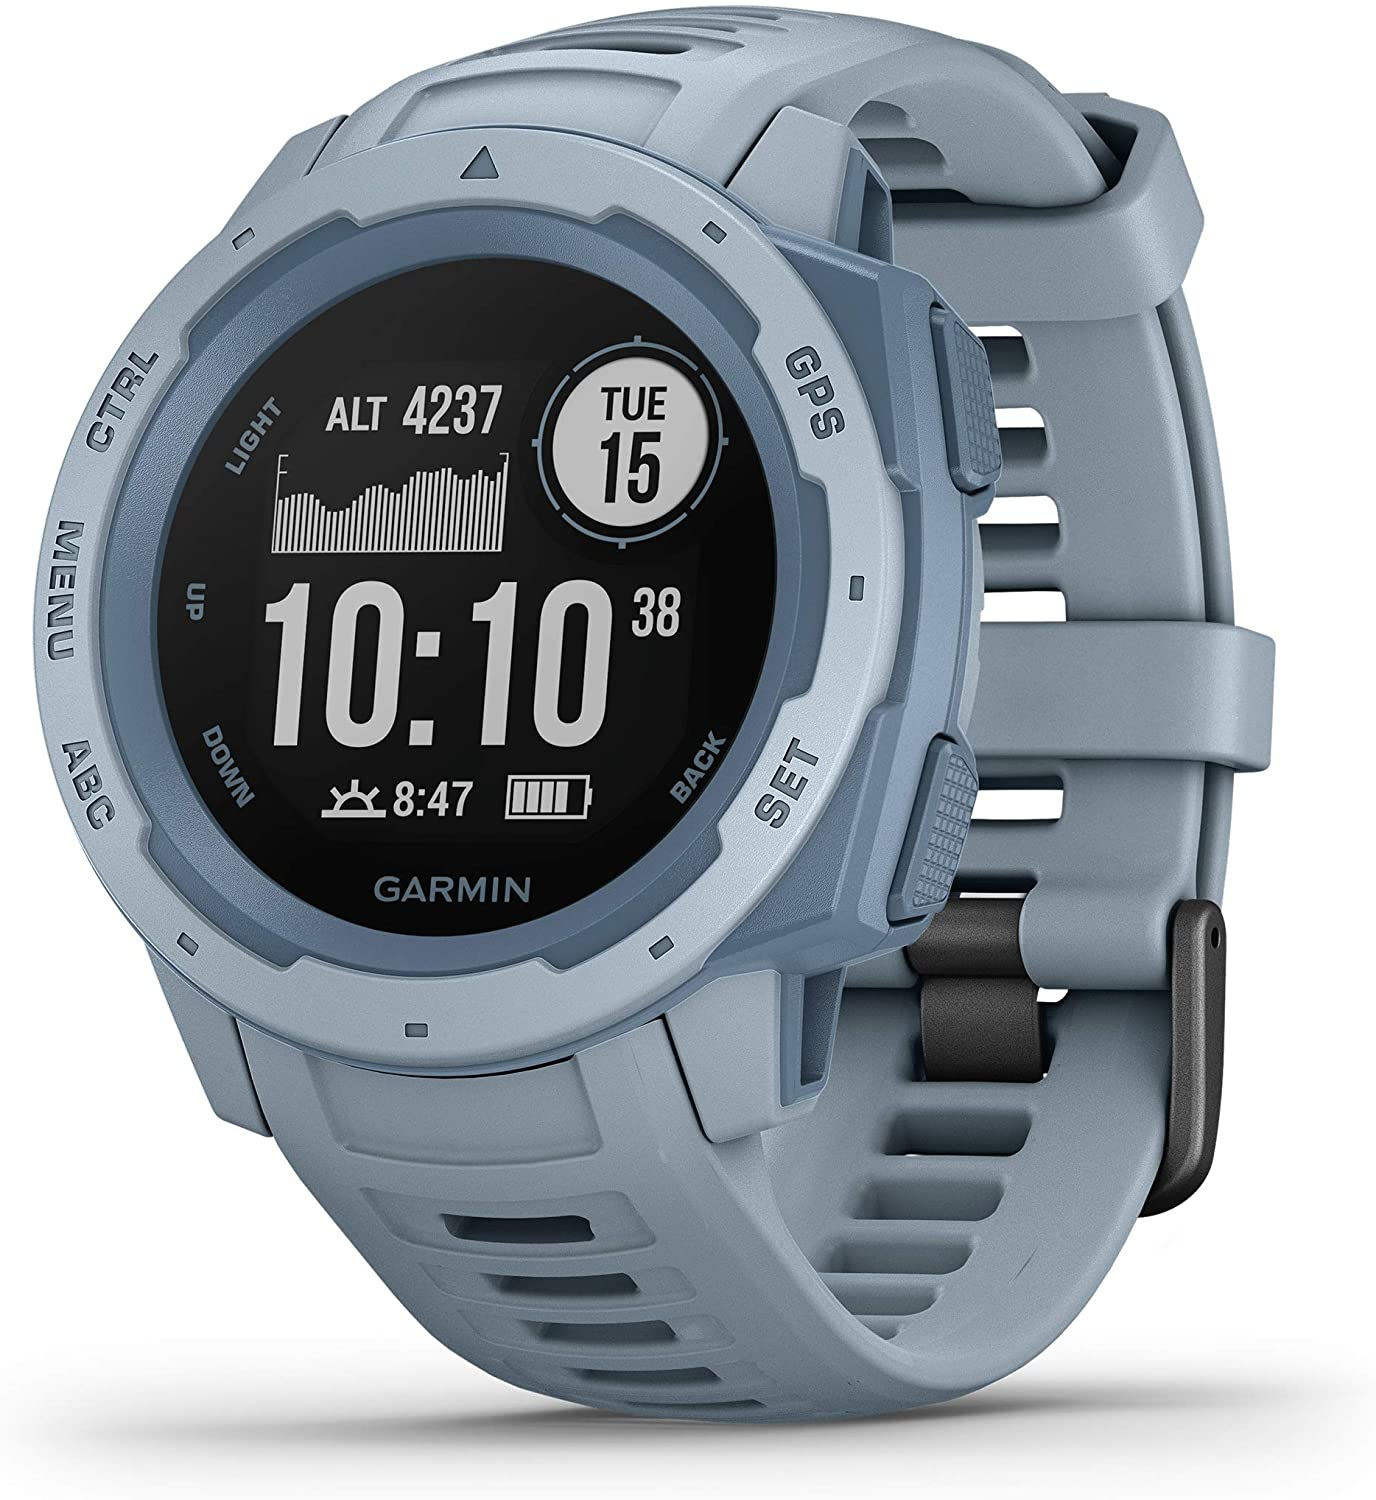 Amazon Prime Day deals: Get £100 off Garmin's Instinct Rugged GPS watch - Cycling Weekly